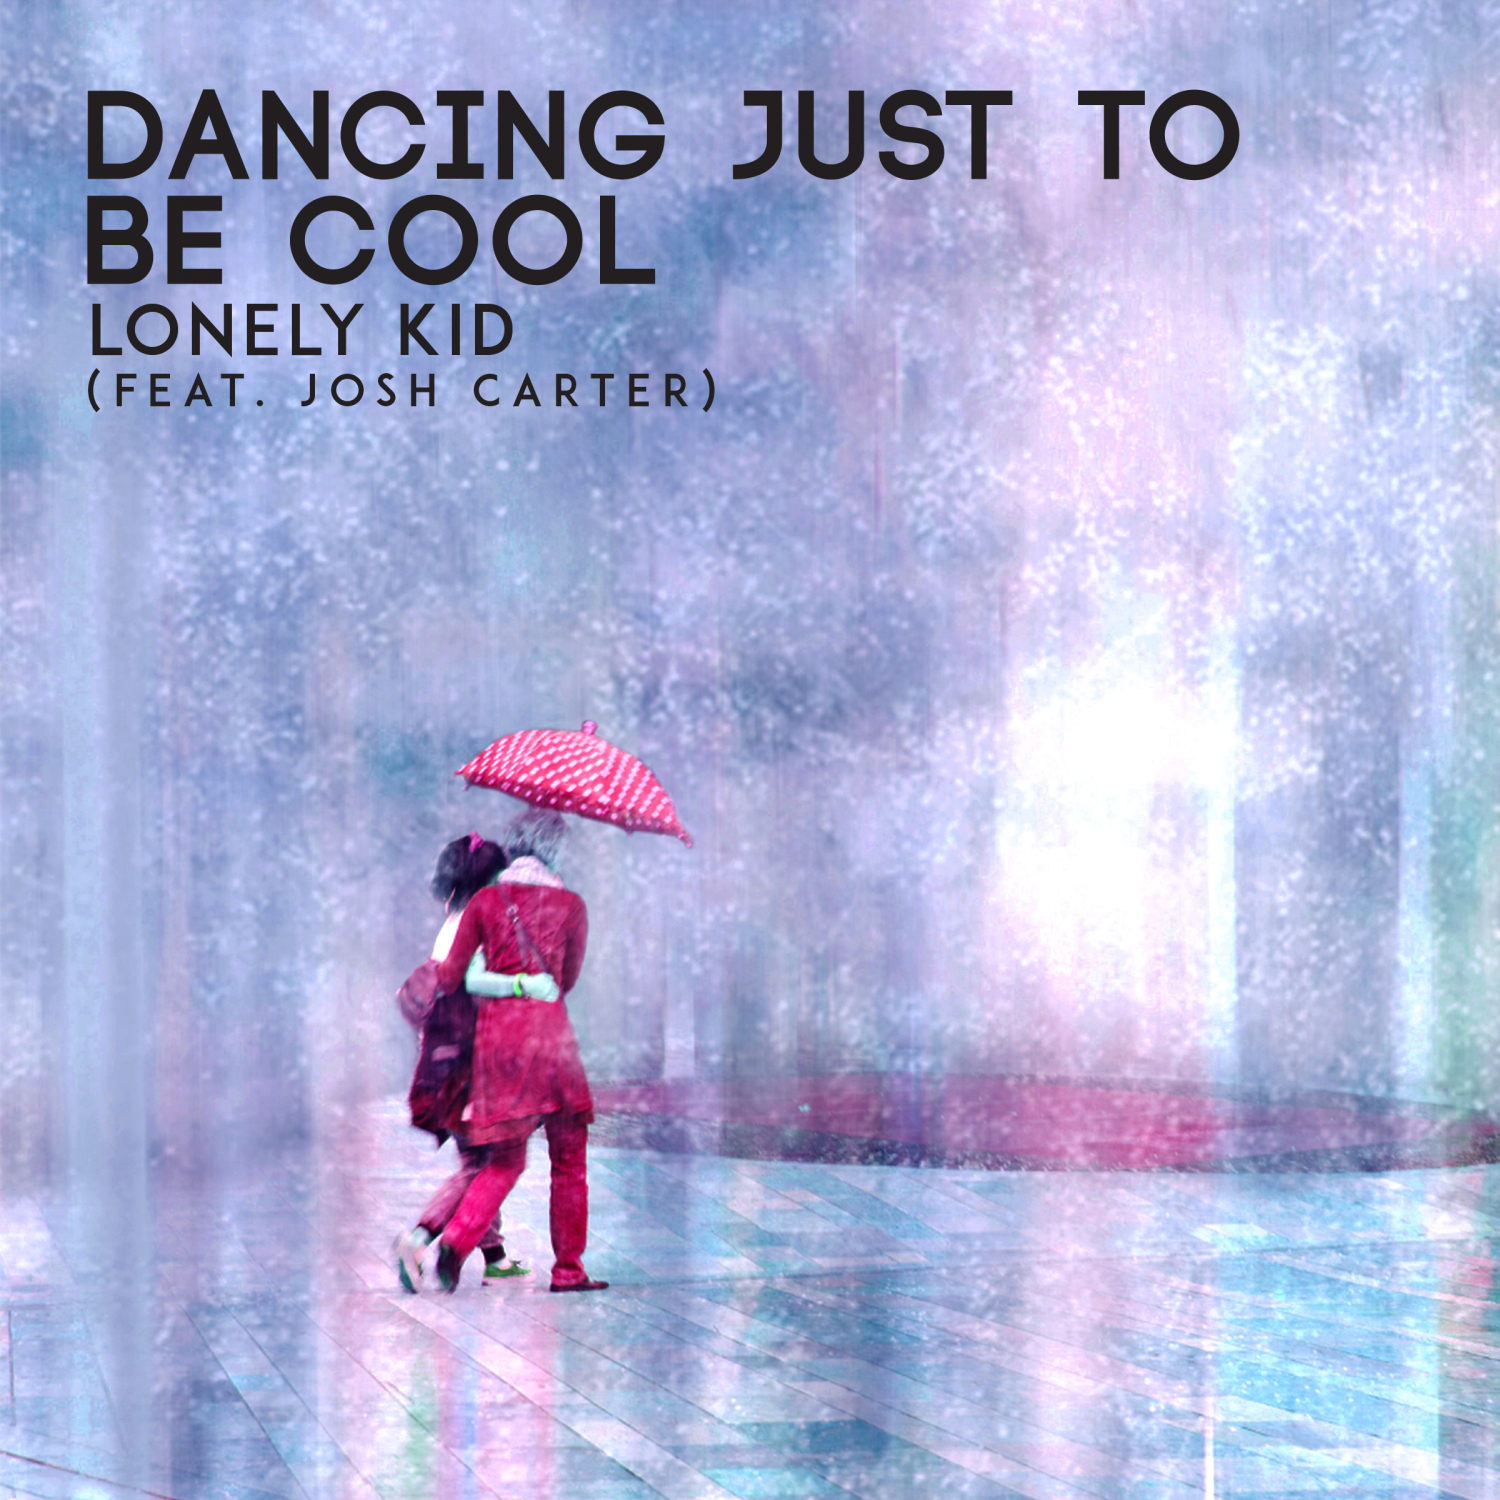 Lonely Kid - Dancing Just To Be Cool (Original Mix)